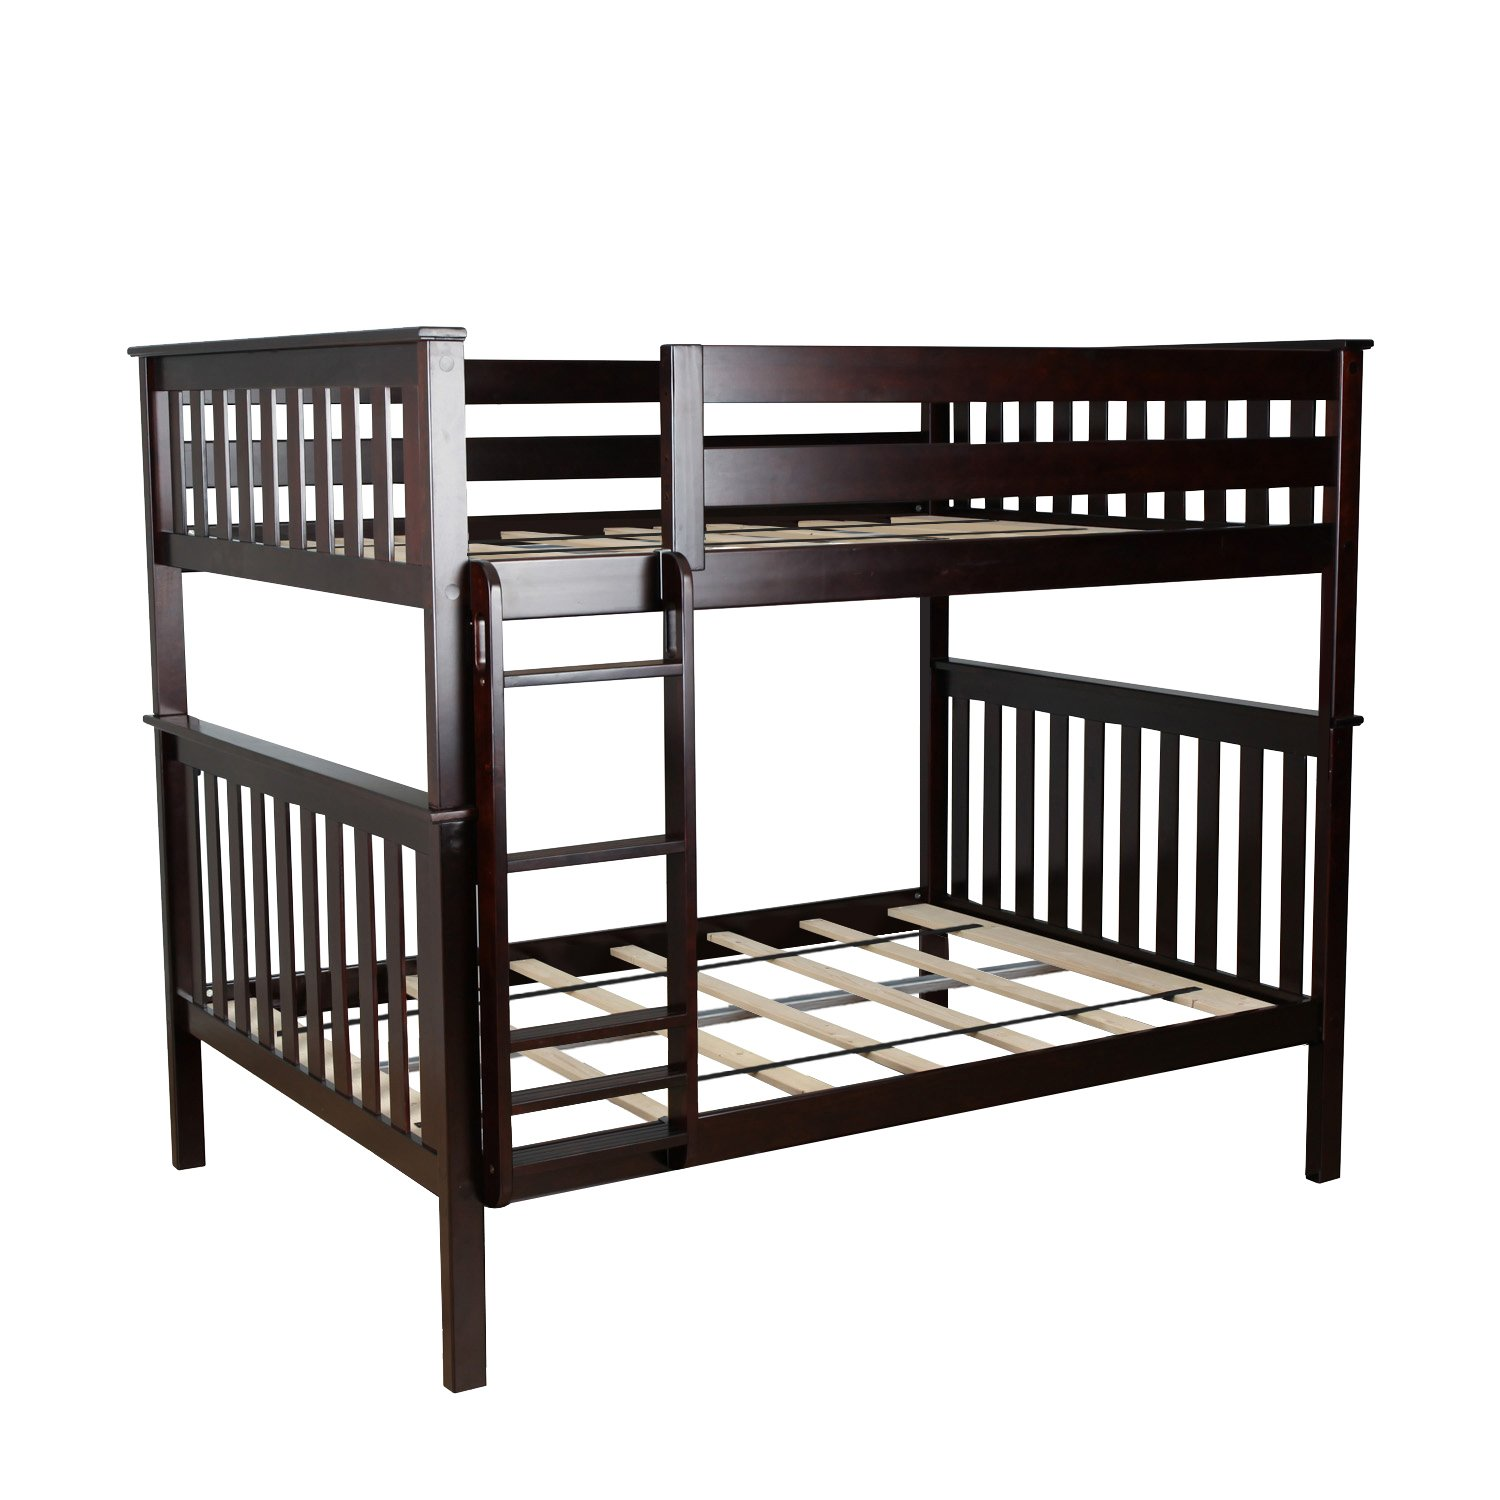 Max & Lily Solid Wood Full over Full Bunk Bed, Espresso